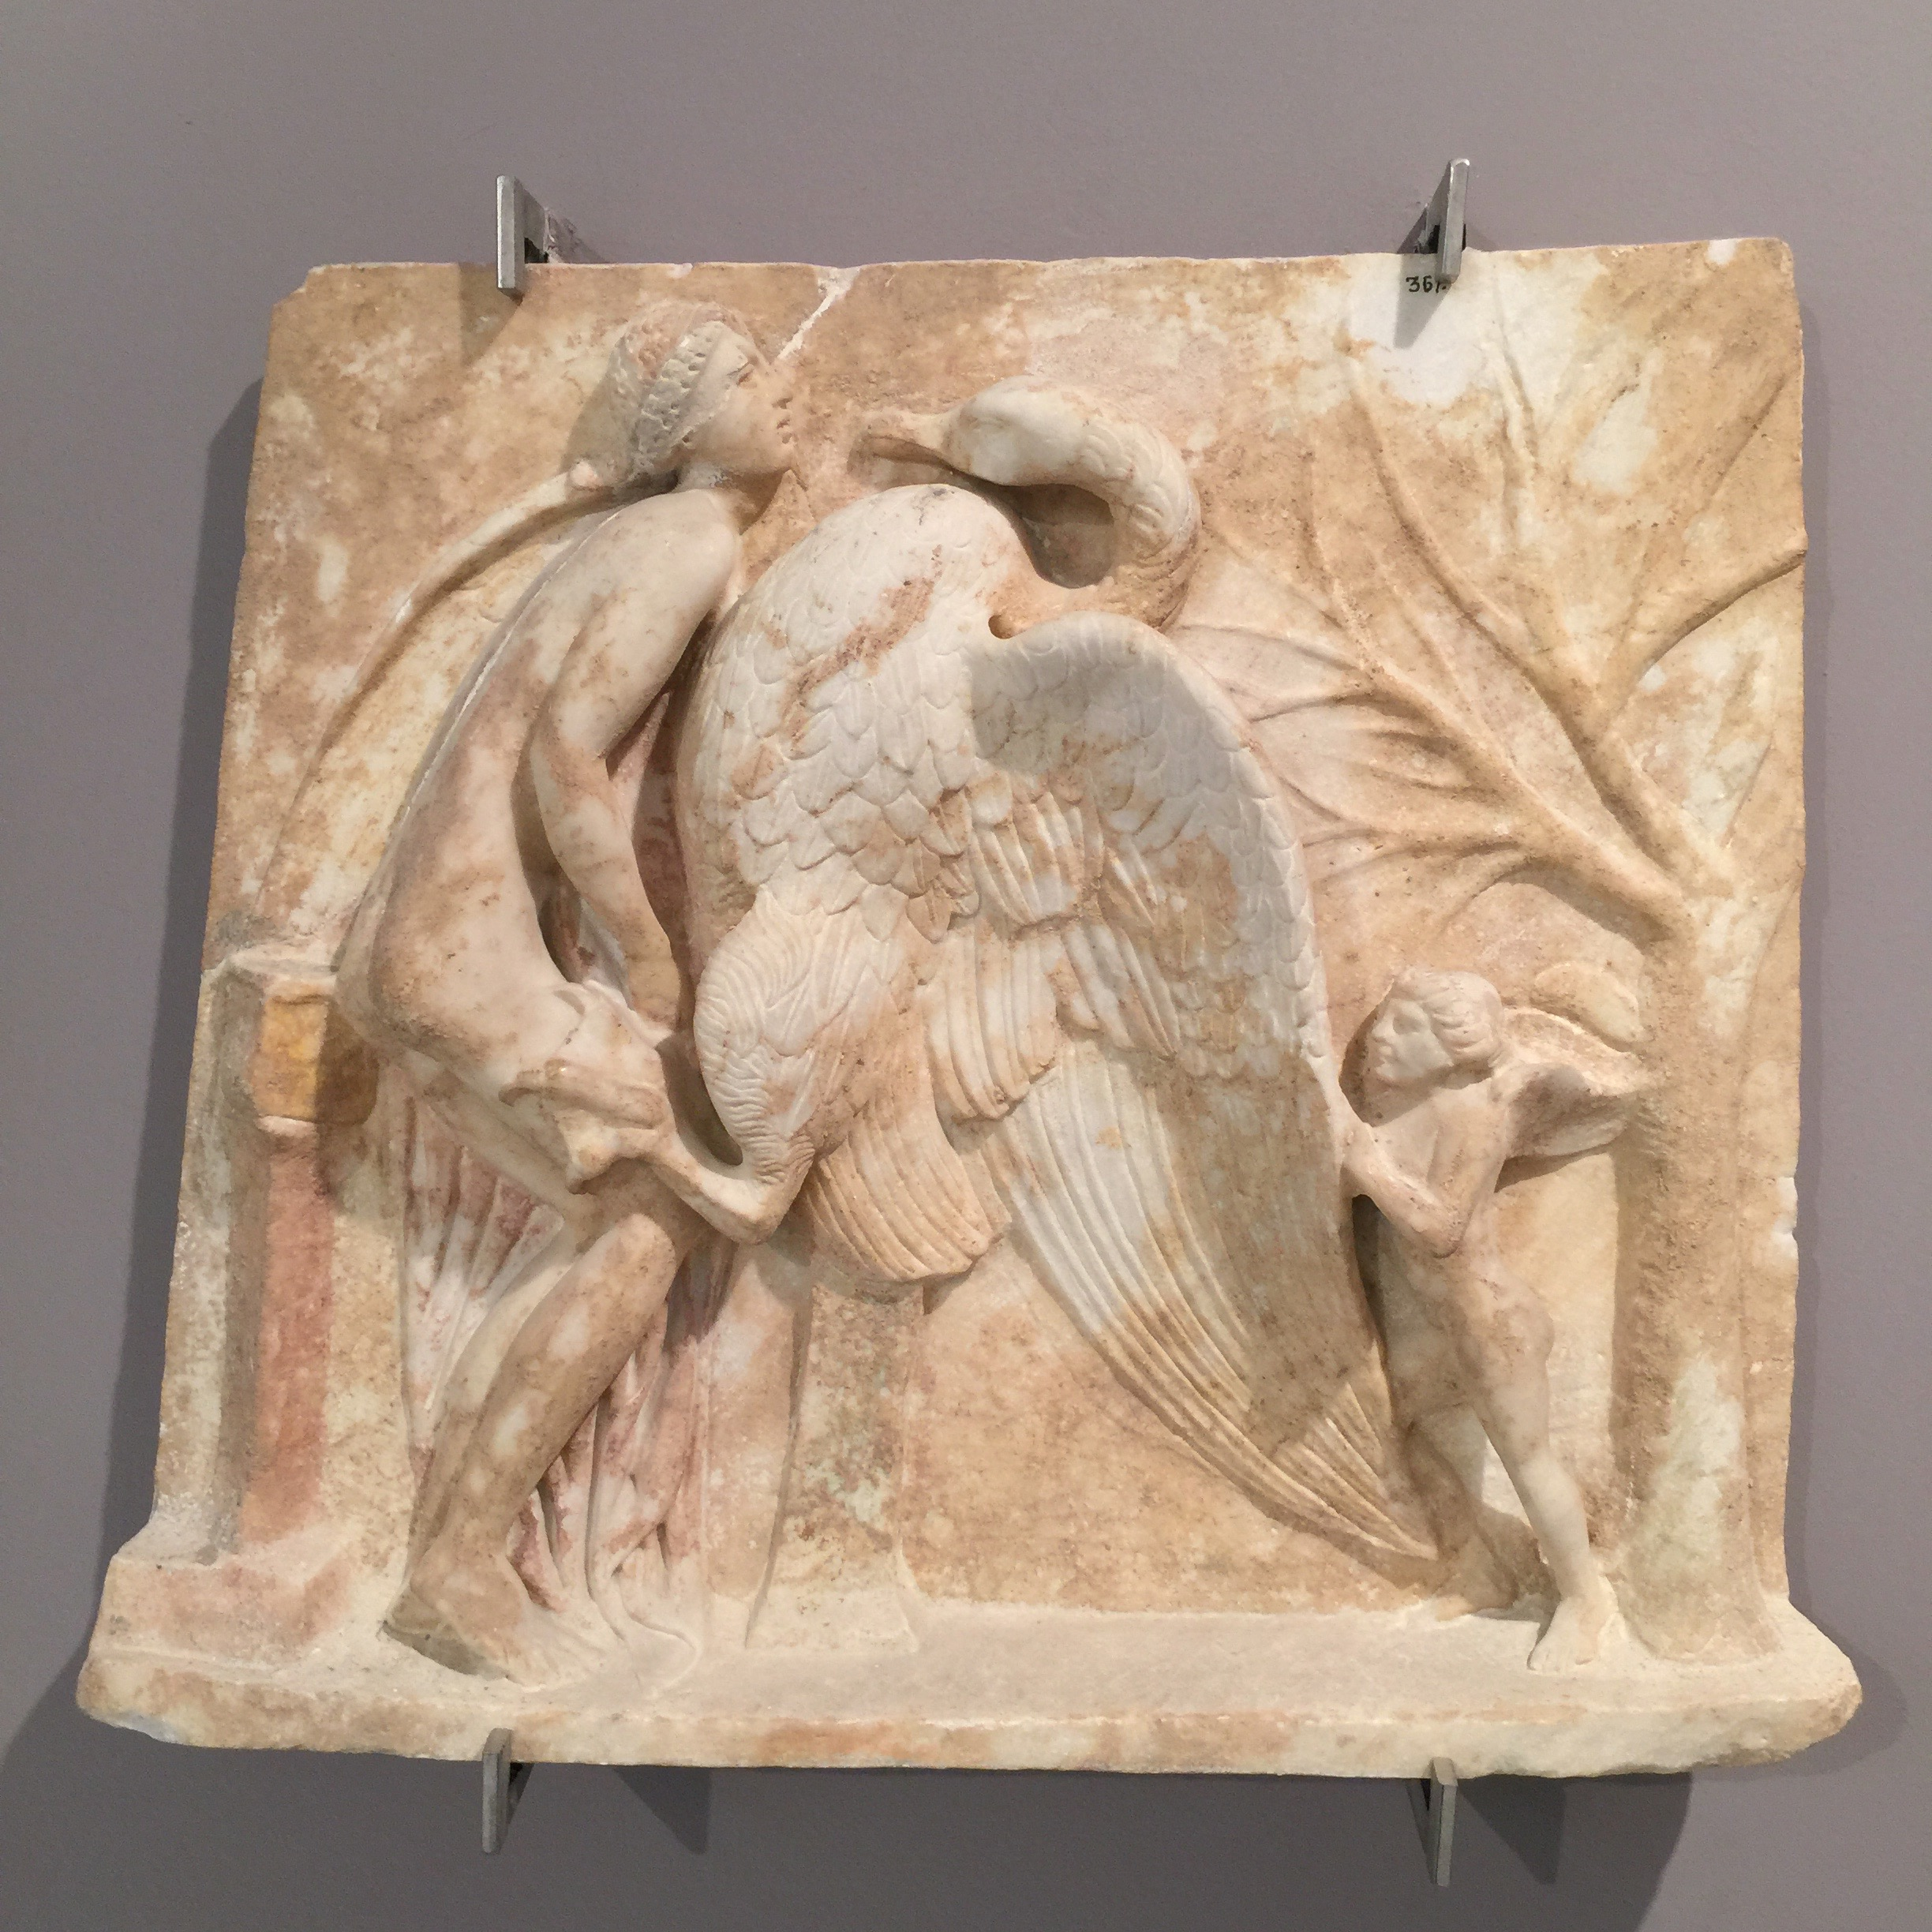 Leda and the swan (the swan is Zeus in disguise); Cerberus (or the 'hound of hell'), both from the Archeological Museum in Heraklion, Crete (photos RYC)